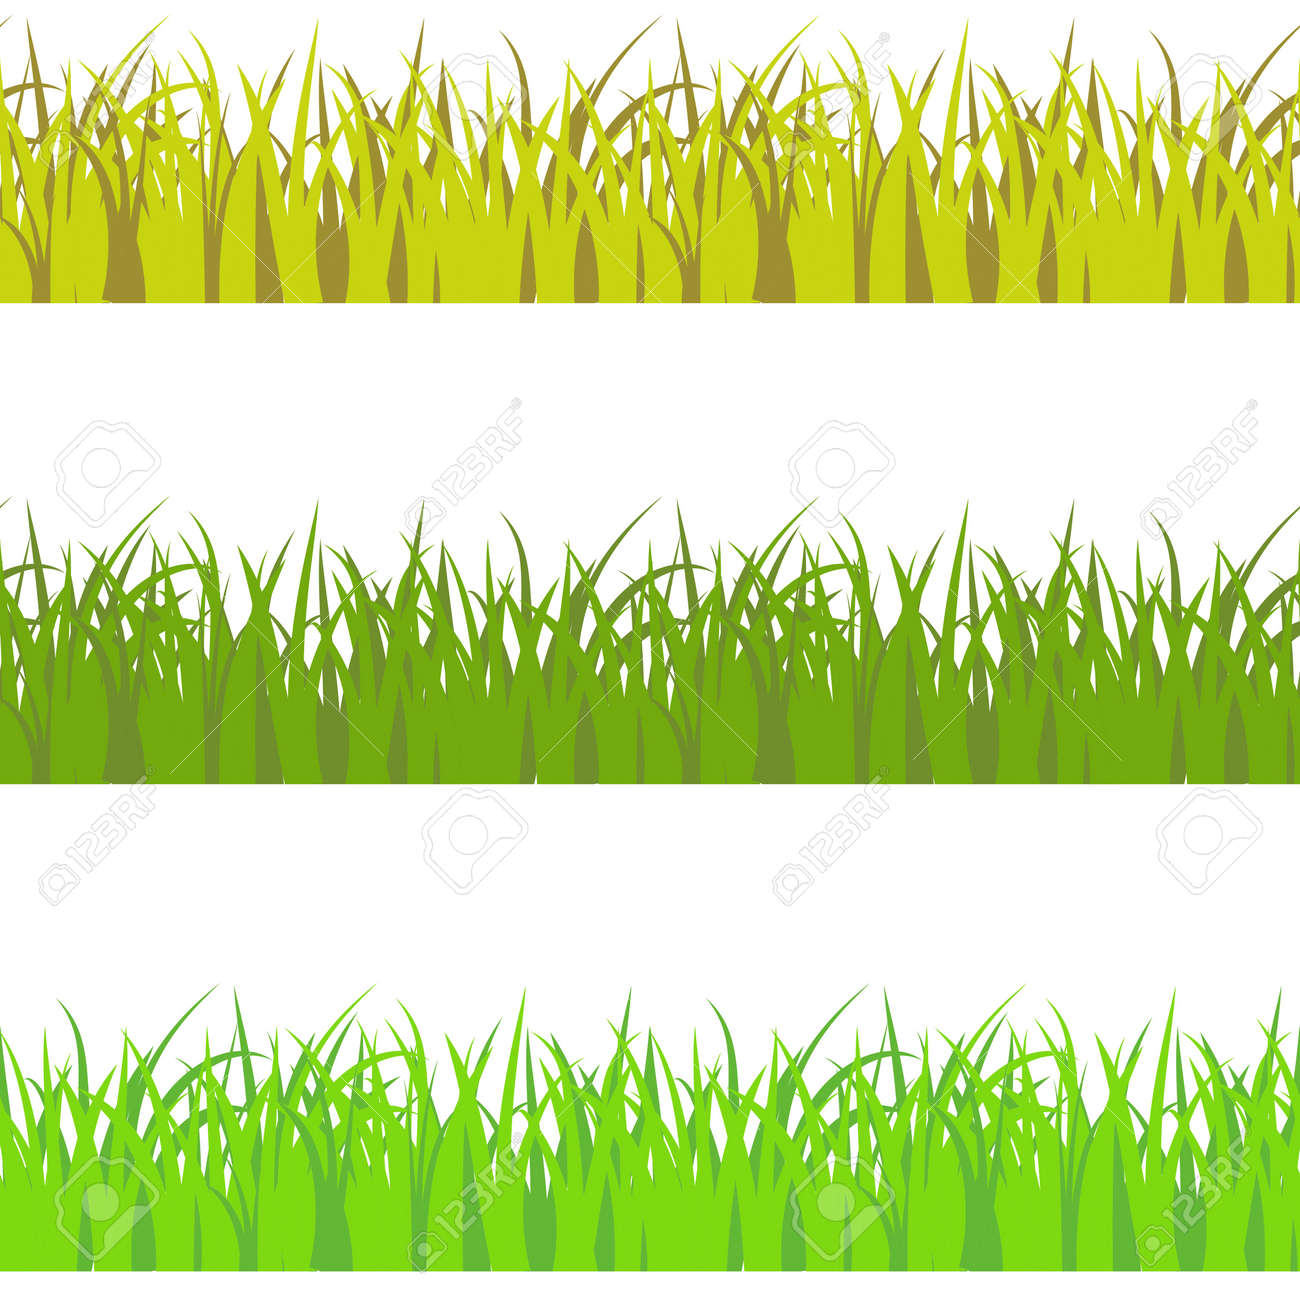 Vector set of 3 vary colors seamless pattern grass. Light green, dark green, and yellow savan style color grass props decor. - 169039176